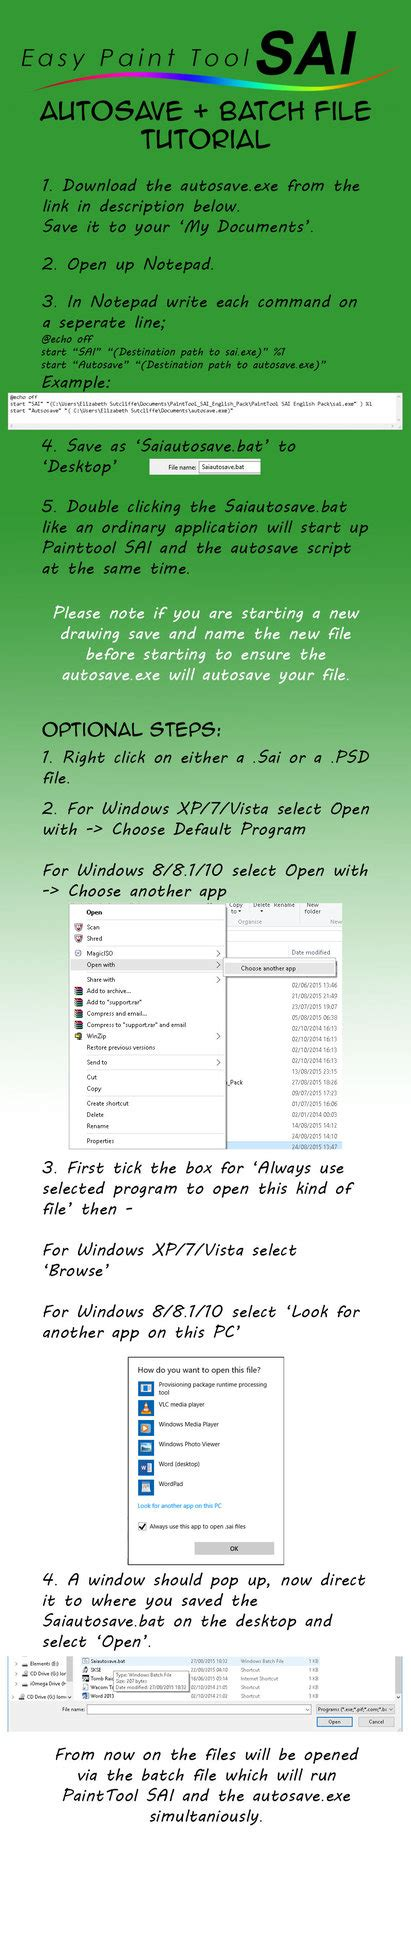 Paint Tool Sai Autosave And Batch File Tutorial By